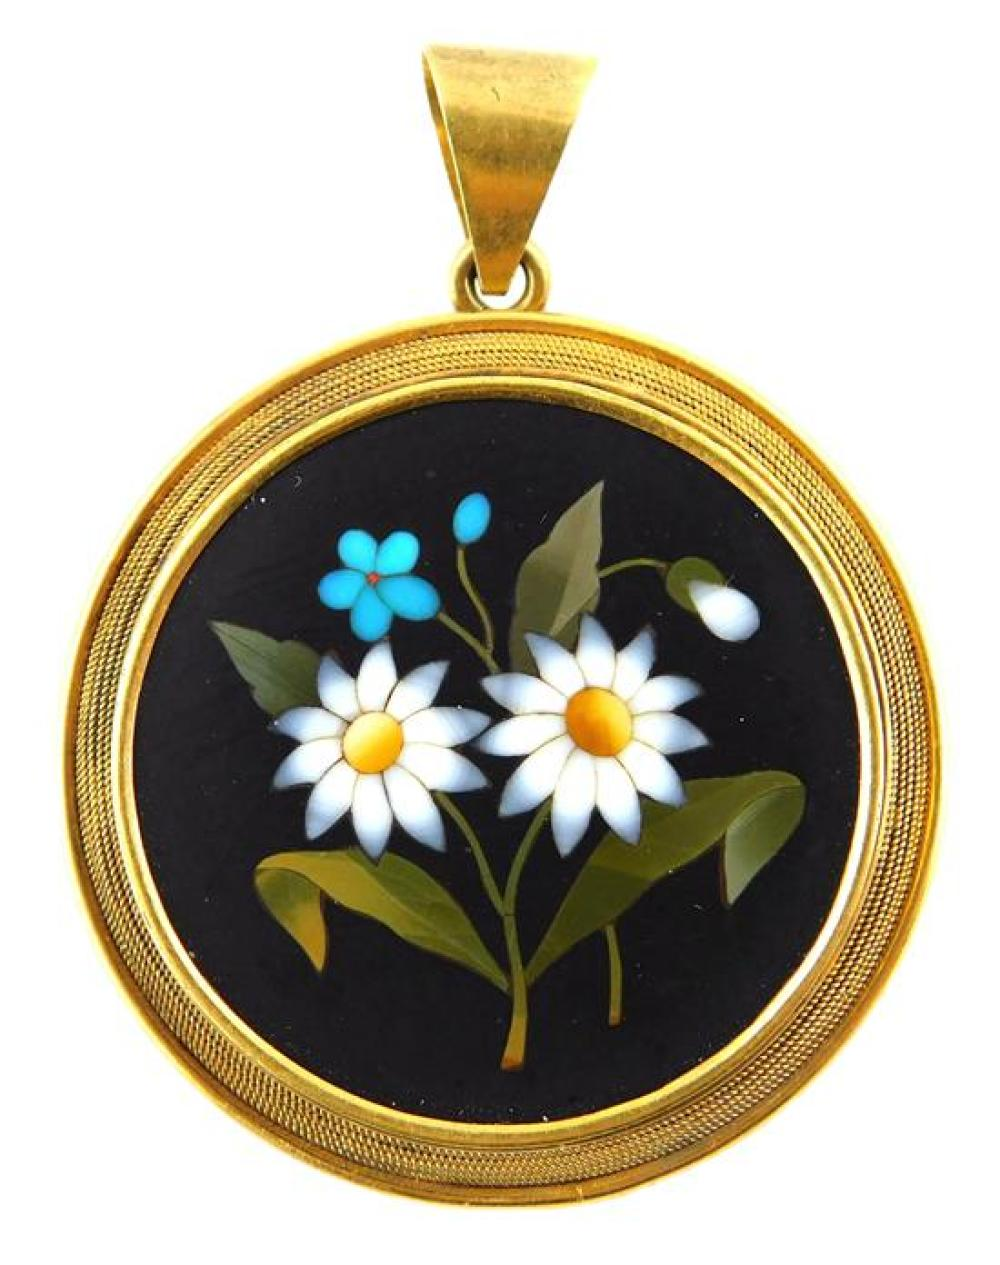 JEWELRY: 18K Pietra Dura Pendant of Daisies, round frame with hinged bale tested 18K yellow gold, design features two white petaled ...